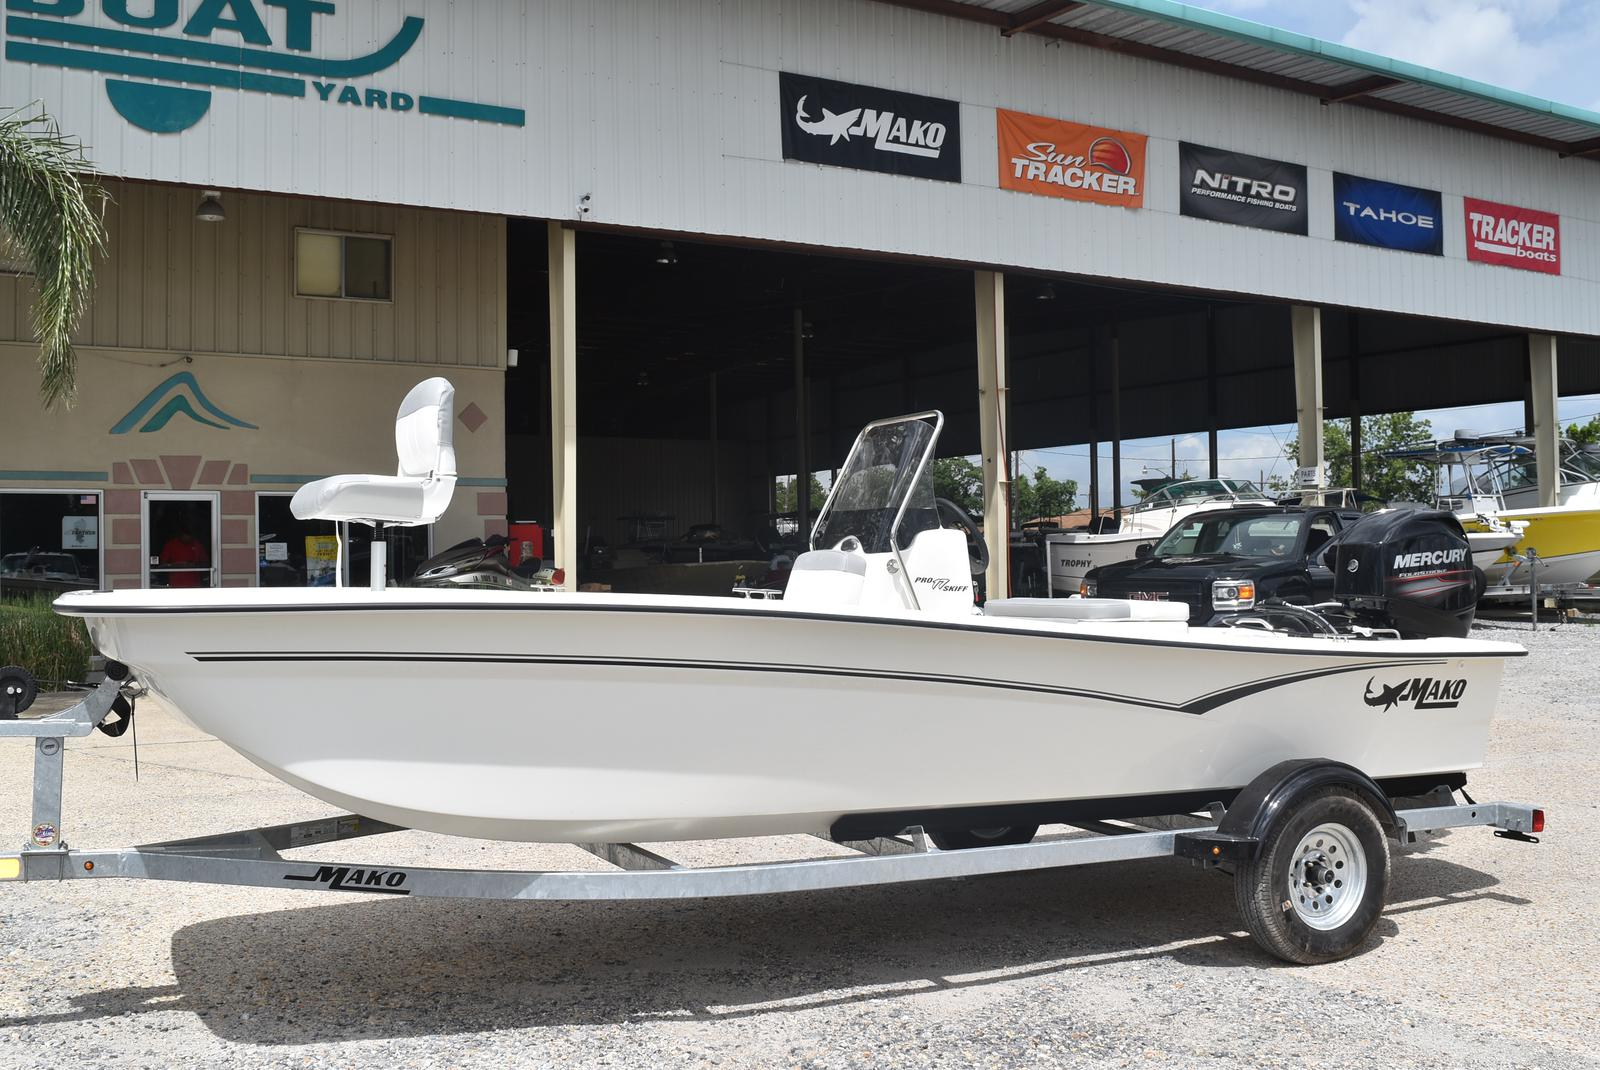 2020 Mako boat for sale, model of the boat is Pro Skiff 17, 75 ELPT & Image # 93 of 702